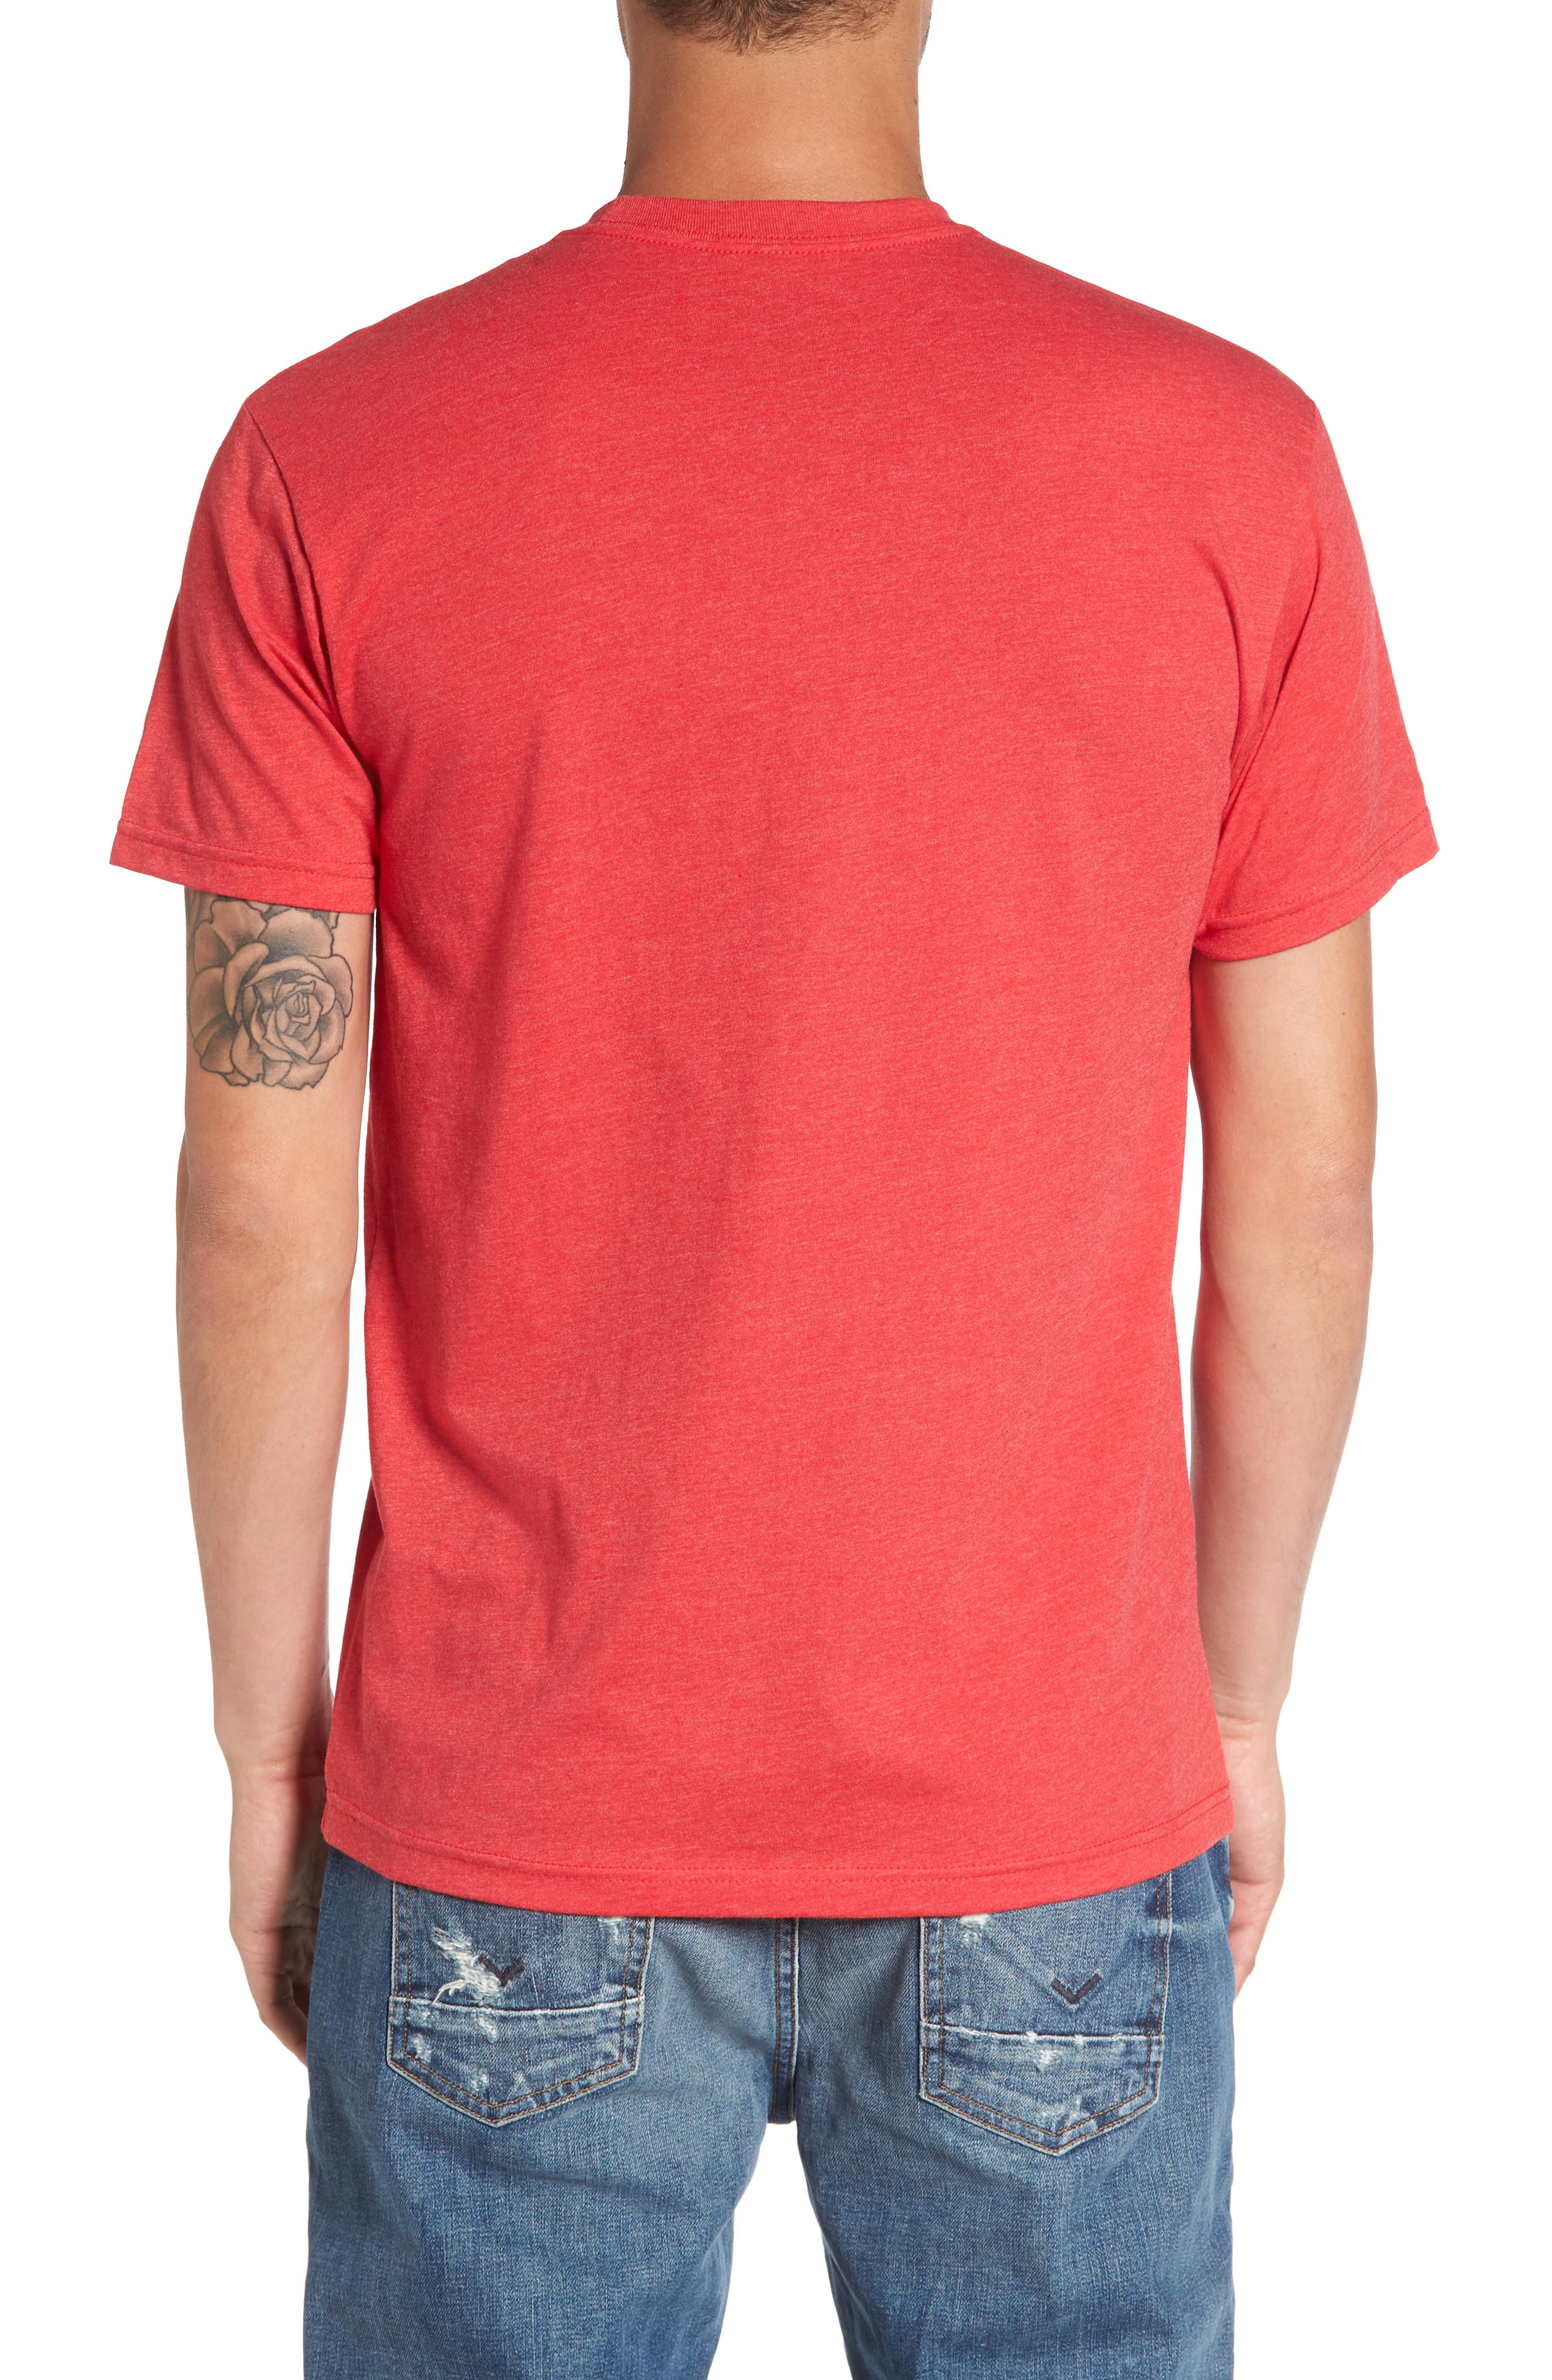 Horrible Idea Graphic T-Shirt,                             Alternate thumbnail 2, color,                             Red